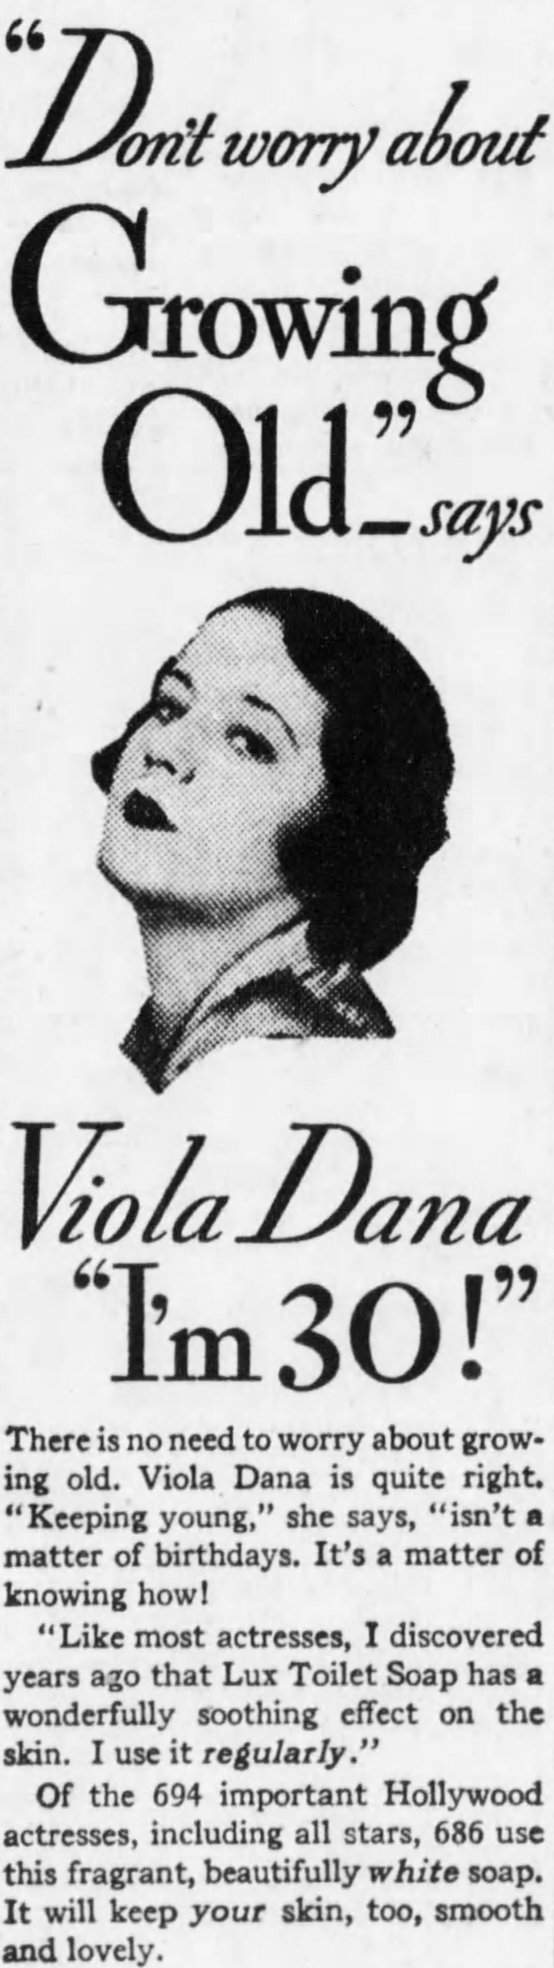 Source: Brooklyn Daily Eagle, August 31, 1932, page 17.